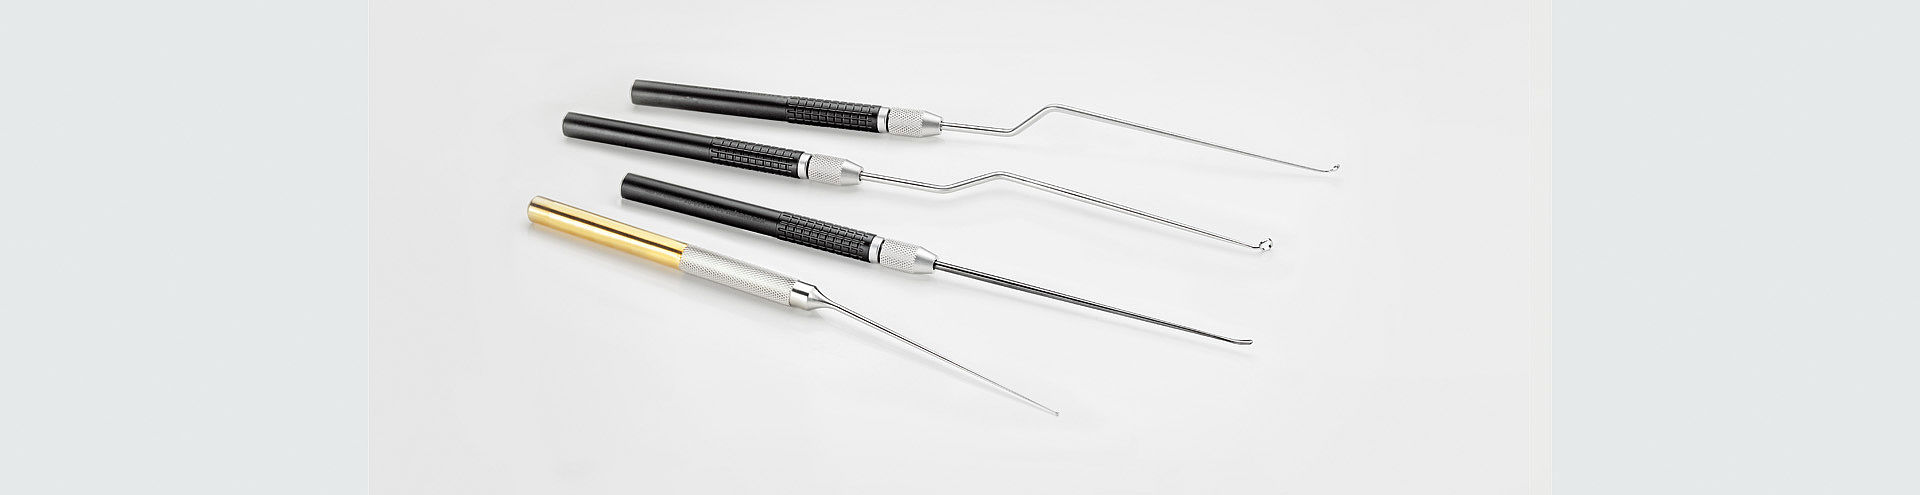 Surgical instruments - Neurosurgery - Instruments